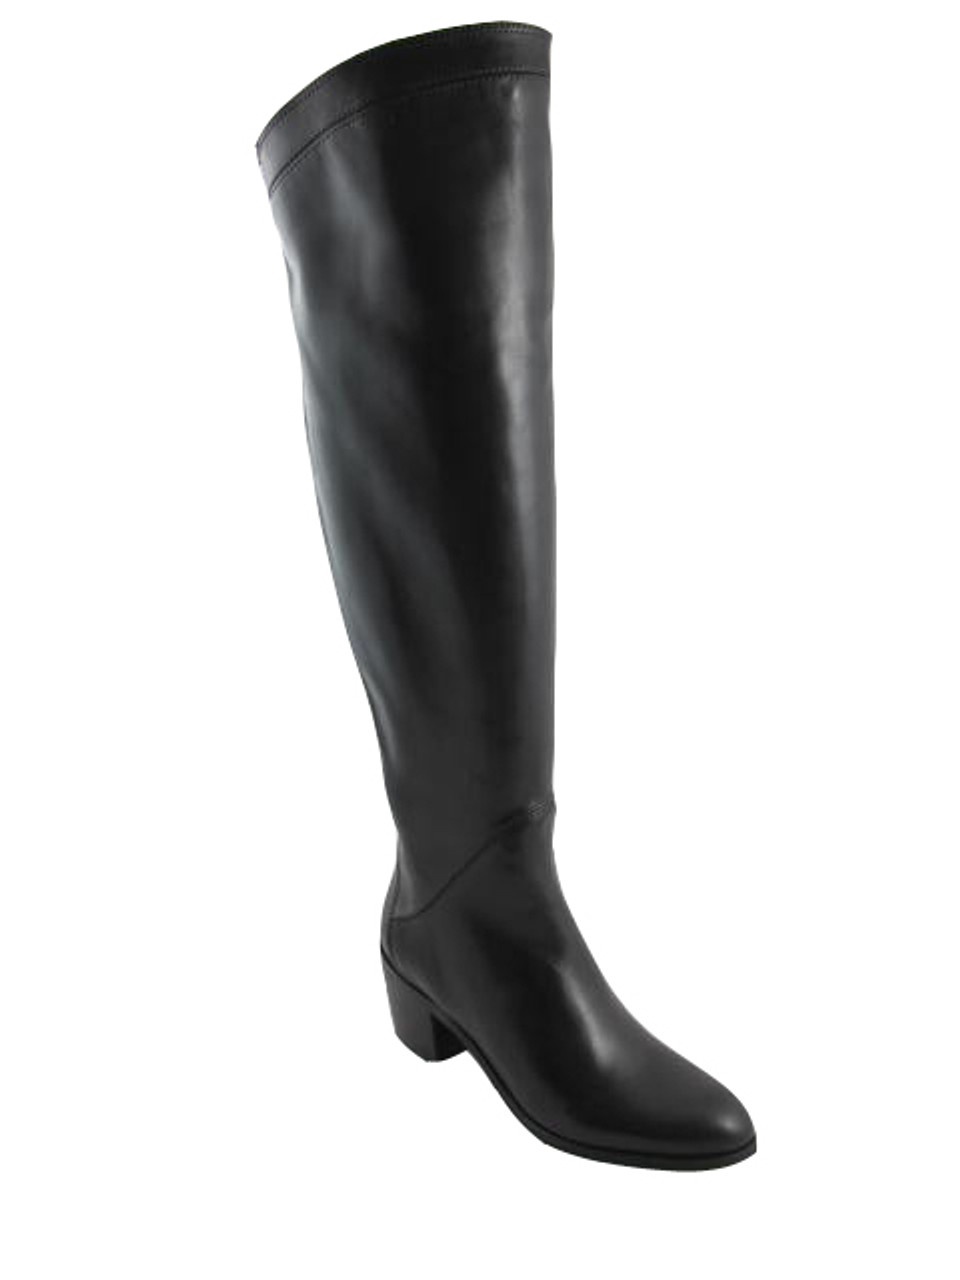 reputable site factory price clear-cut texture Lamica Lindos Women's Dress/Casual Italian Knee High Flat Boot